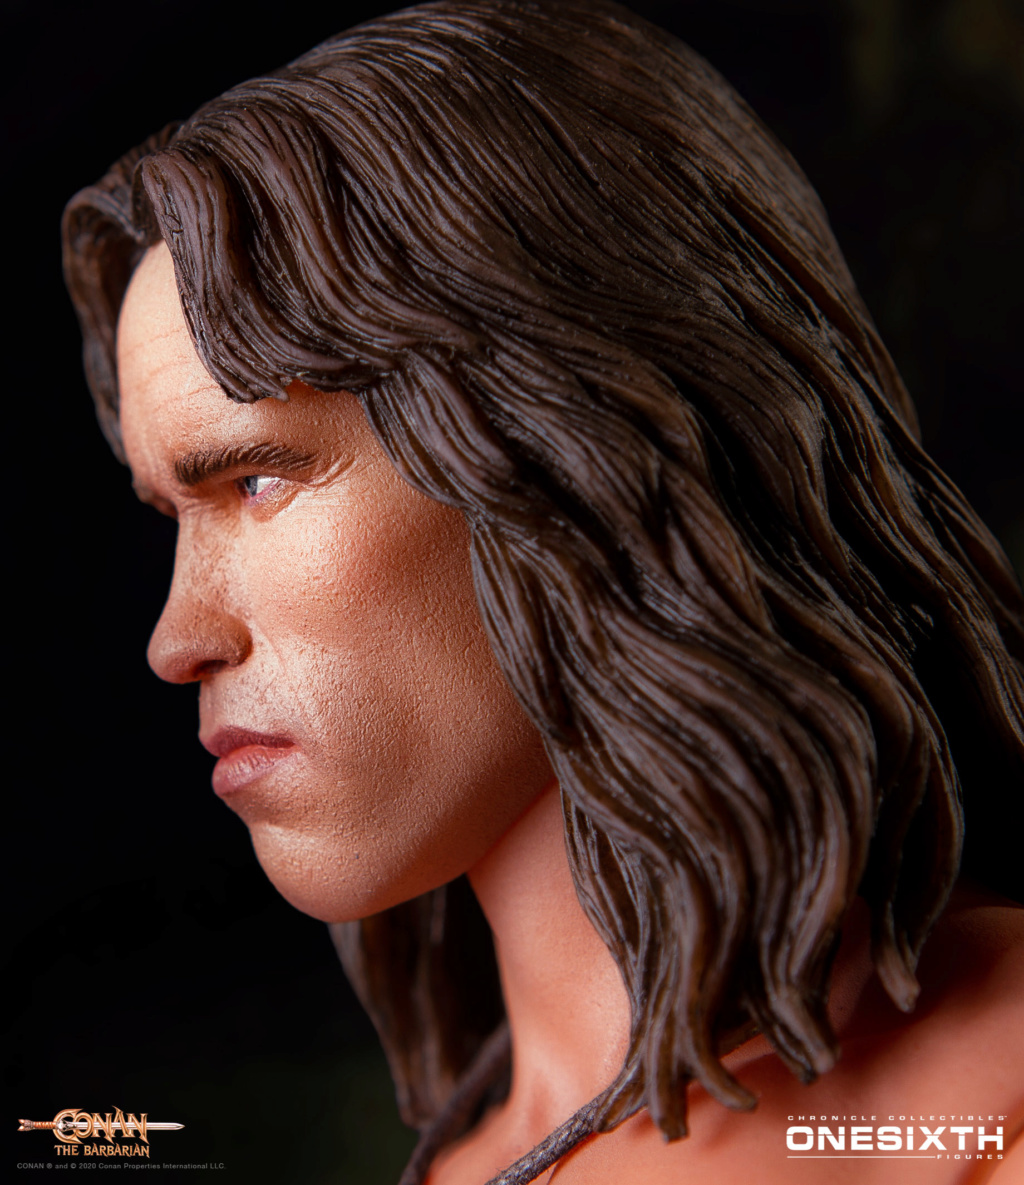 NEW PRODUCT: Chronicle Collectibles: OneSixth Conan the Barbarian Figure Chroni22